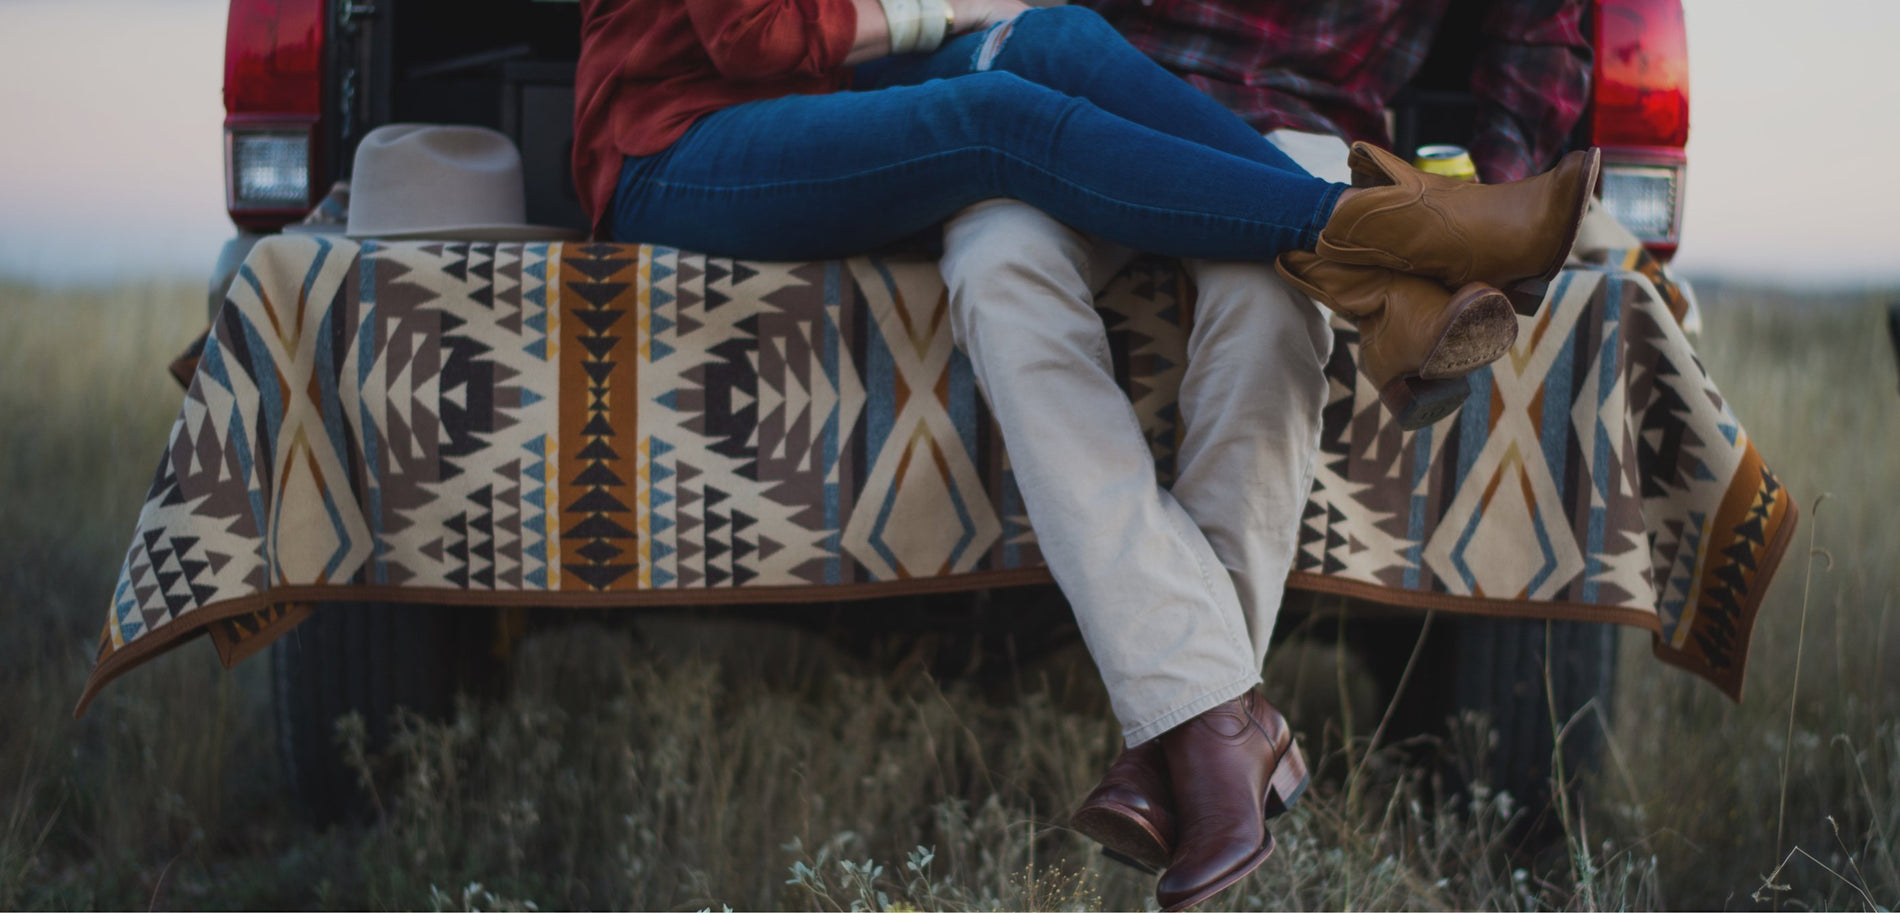 Tecovas Handmade Cowboy Boots Sold Directly To You